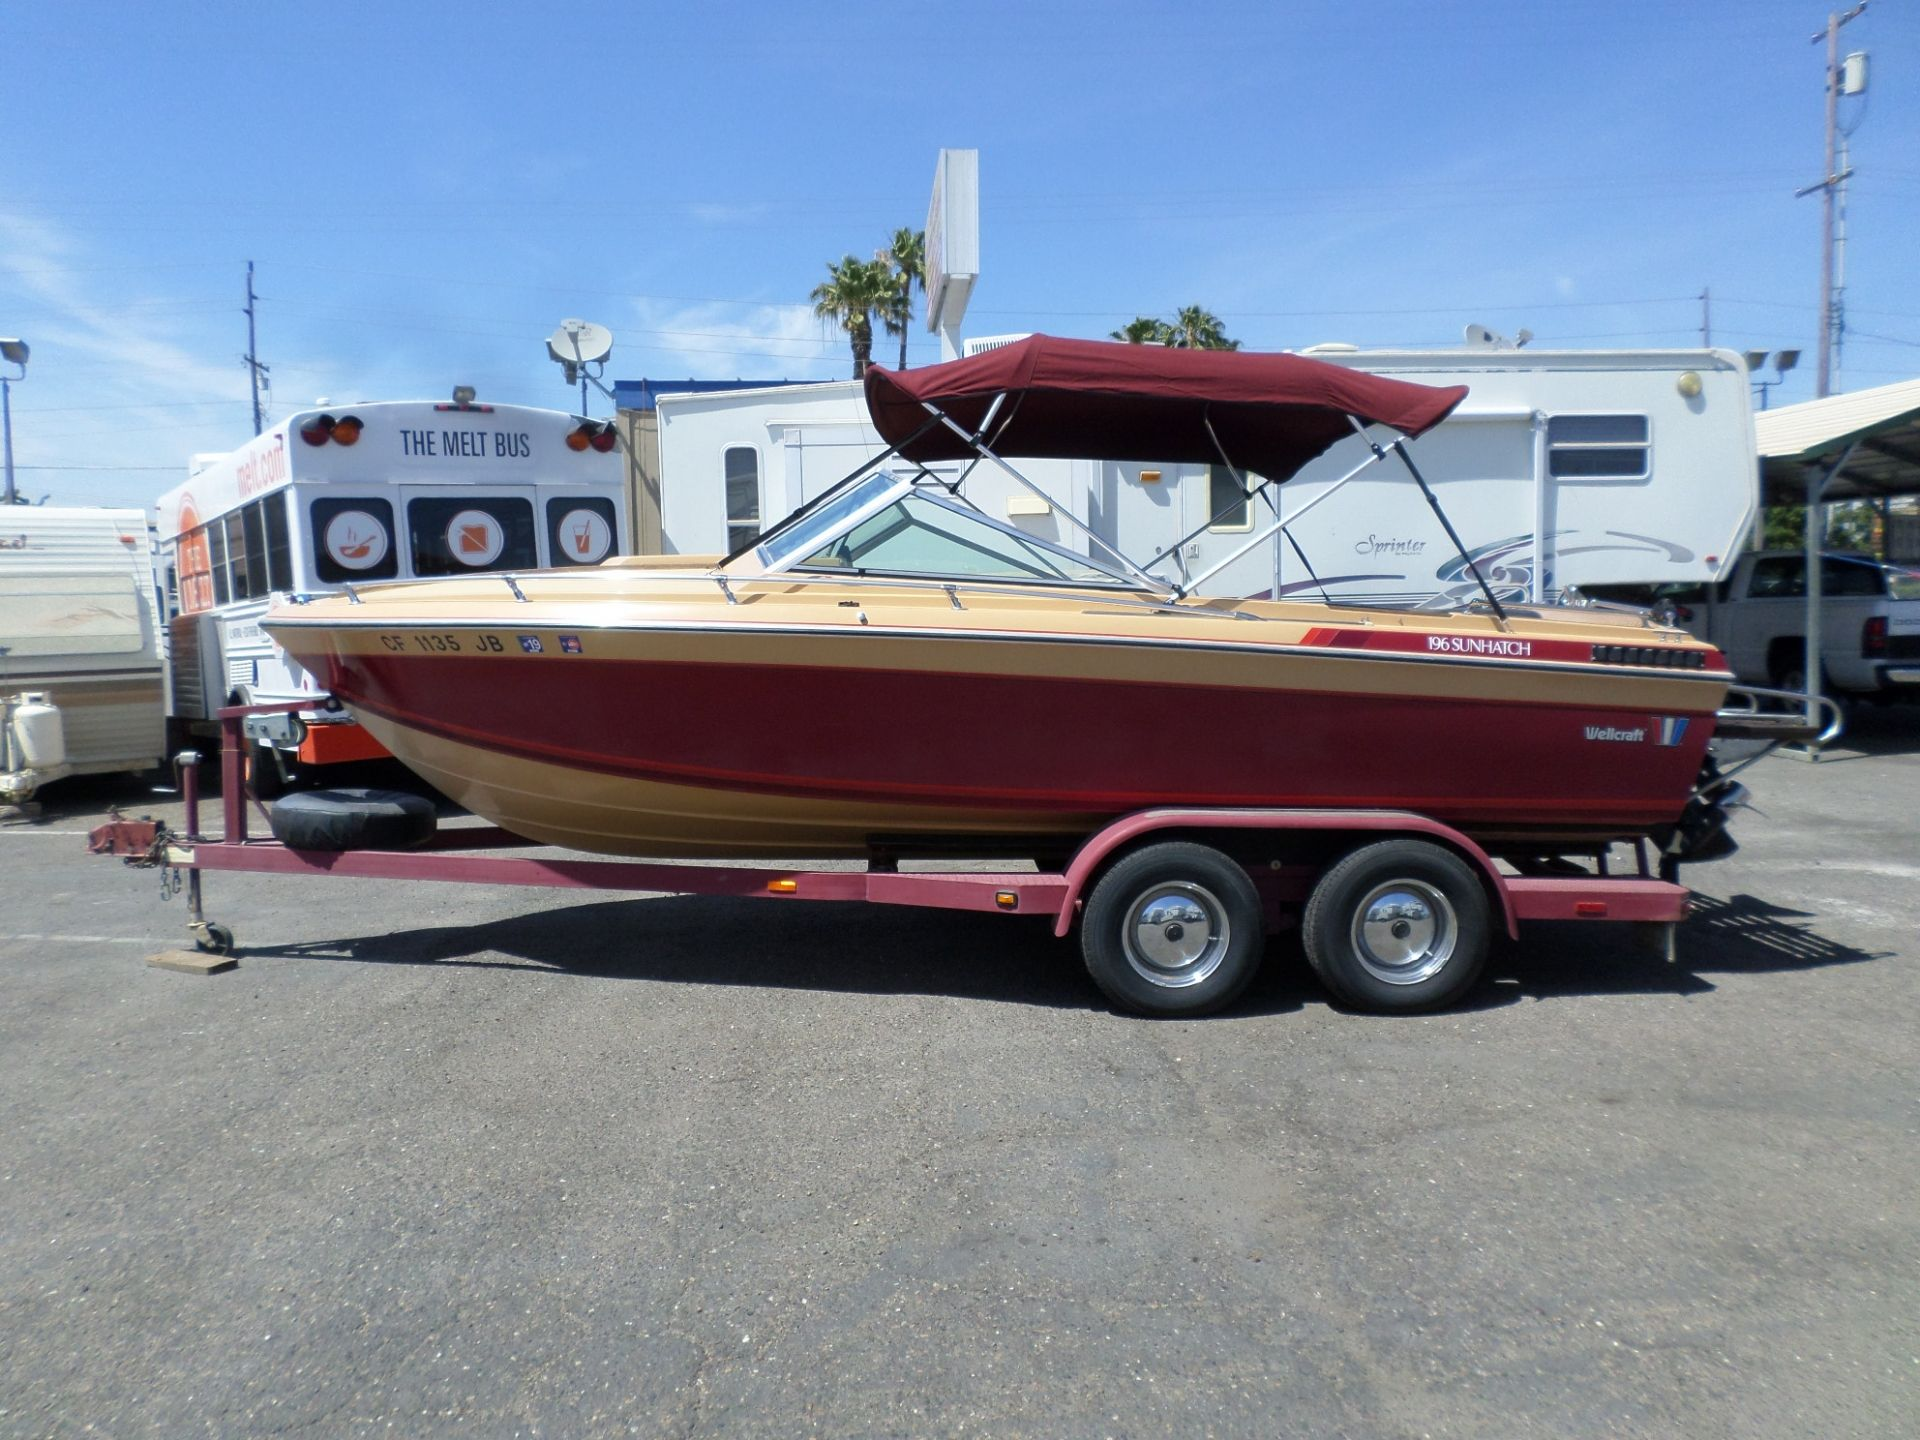 Boat For Sale 1983 Wellcraft 196 Sunhatch 20 In Lodi Stockton Ca Boats For Sale Used Trucks For Sale Used Boat For Sale